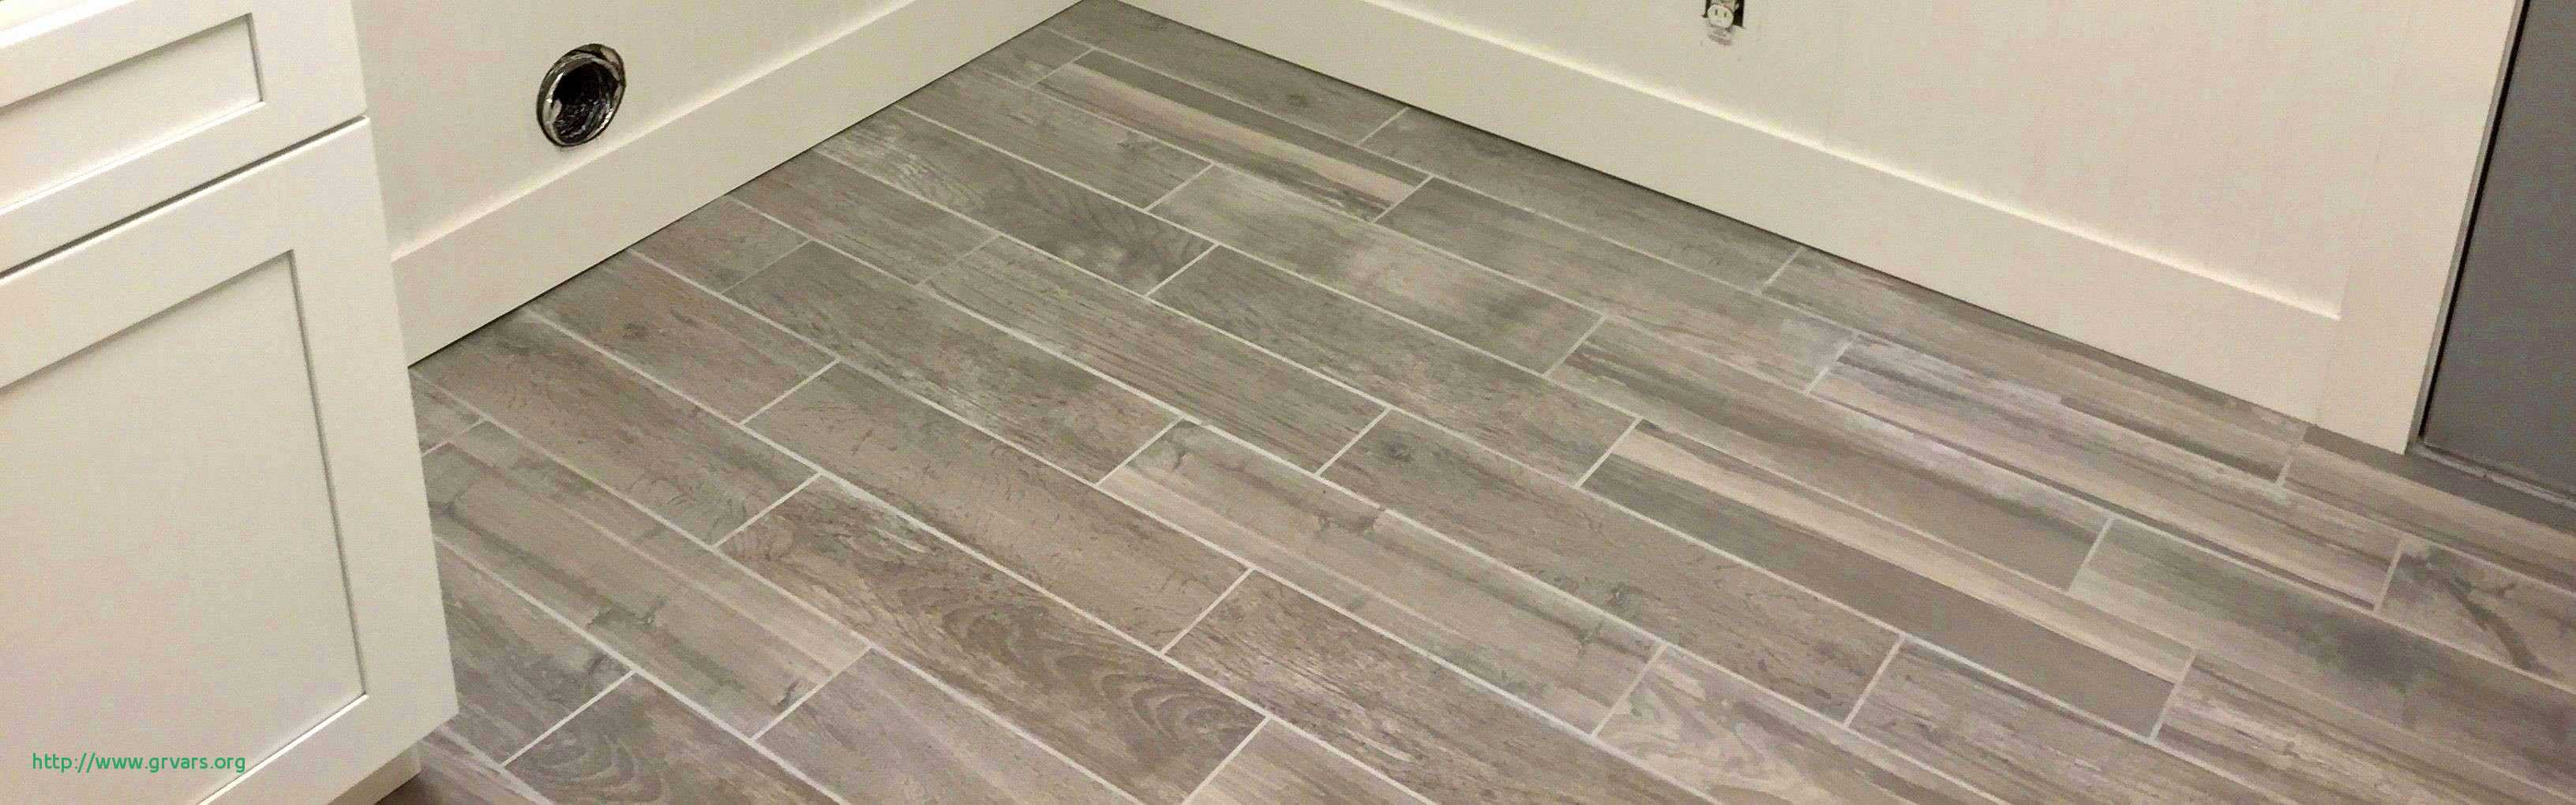 hardwood floor installer job description of 19 a‰lagant flooring jobs edmonton ideas blog with regard to unique bathroom tiling ideas best h sink install bathroom i 0d exciting beautiful fresh bathroom floor